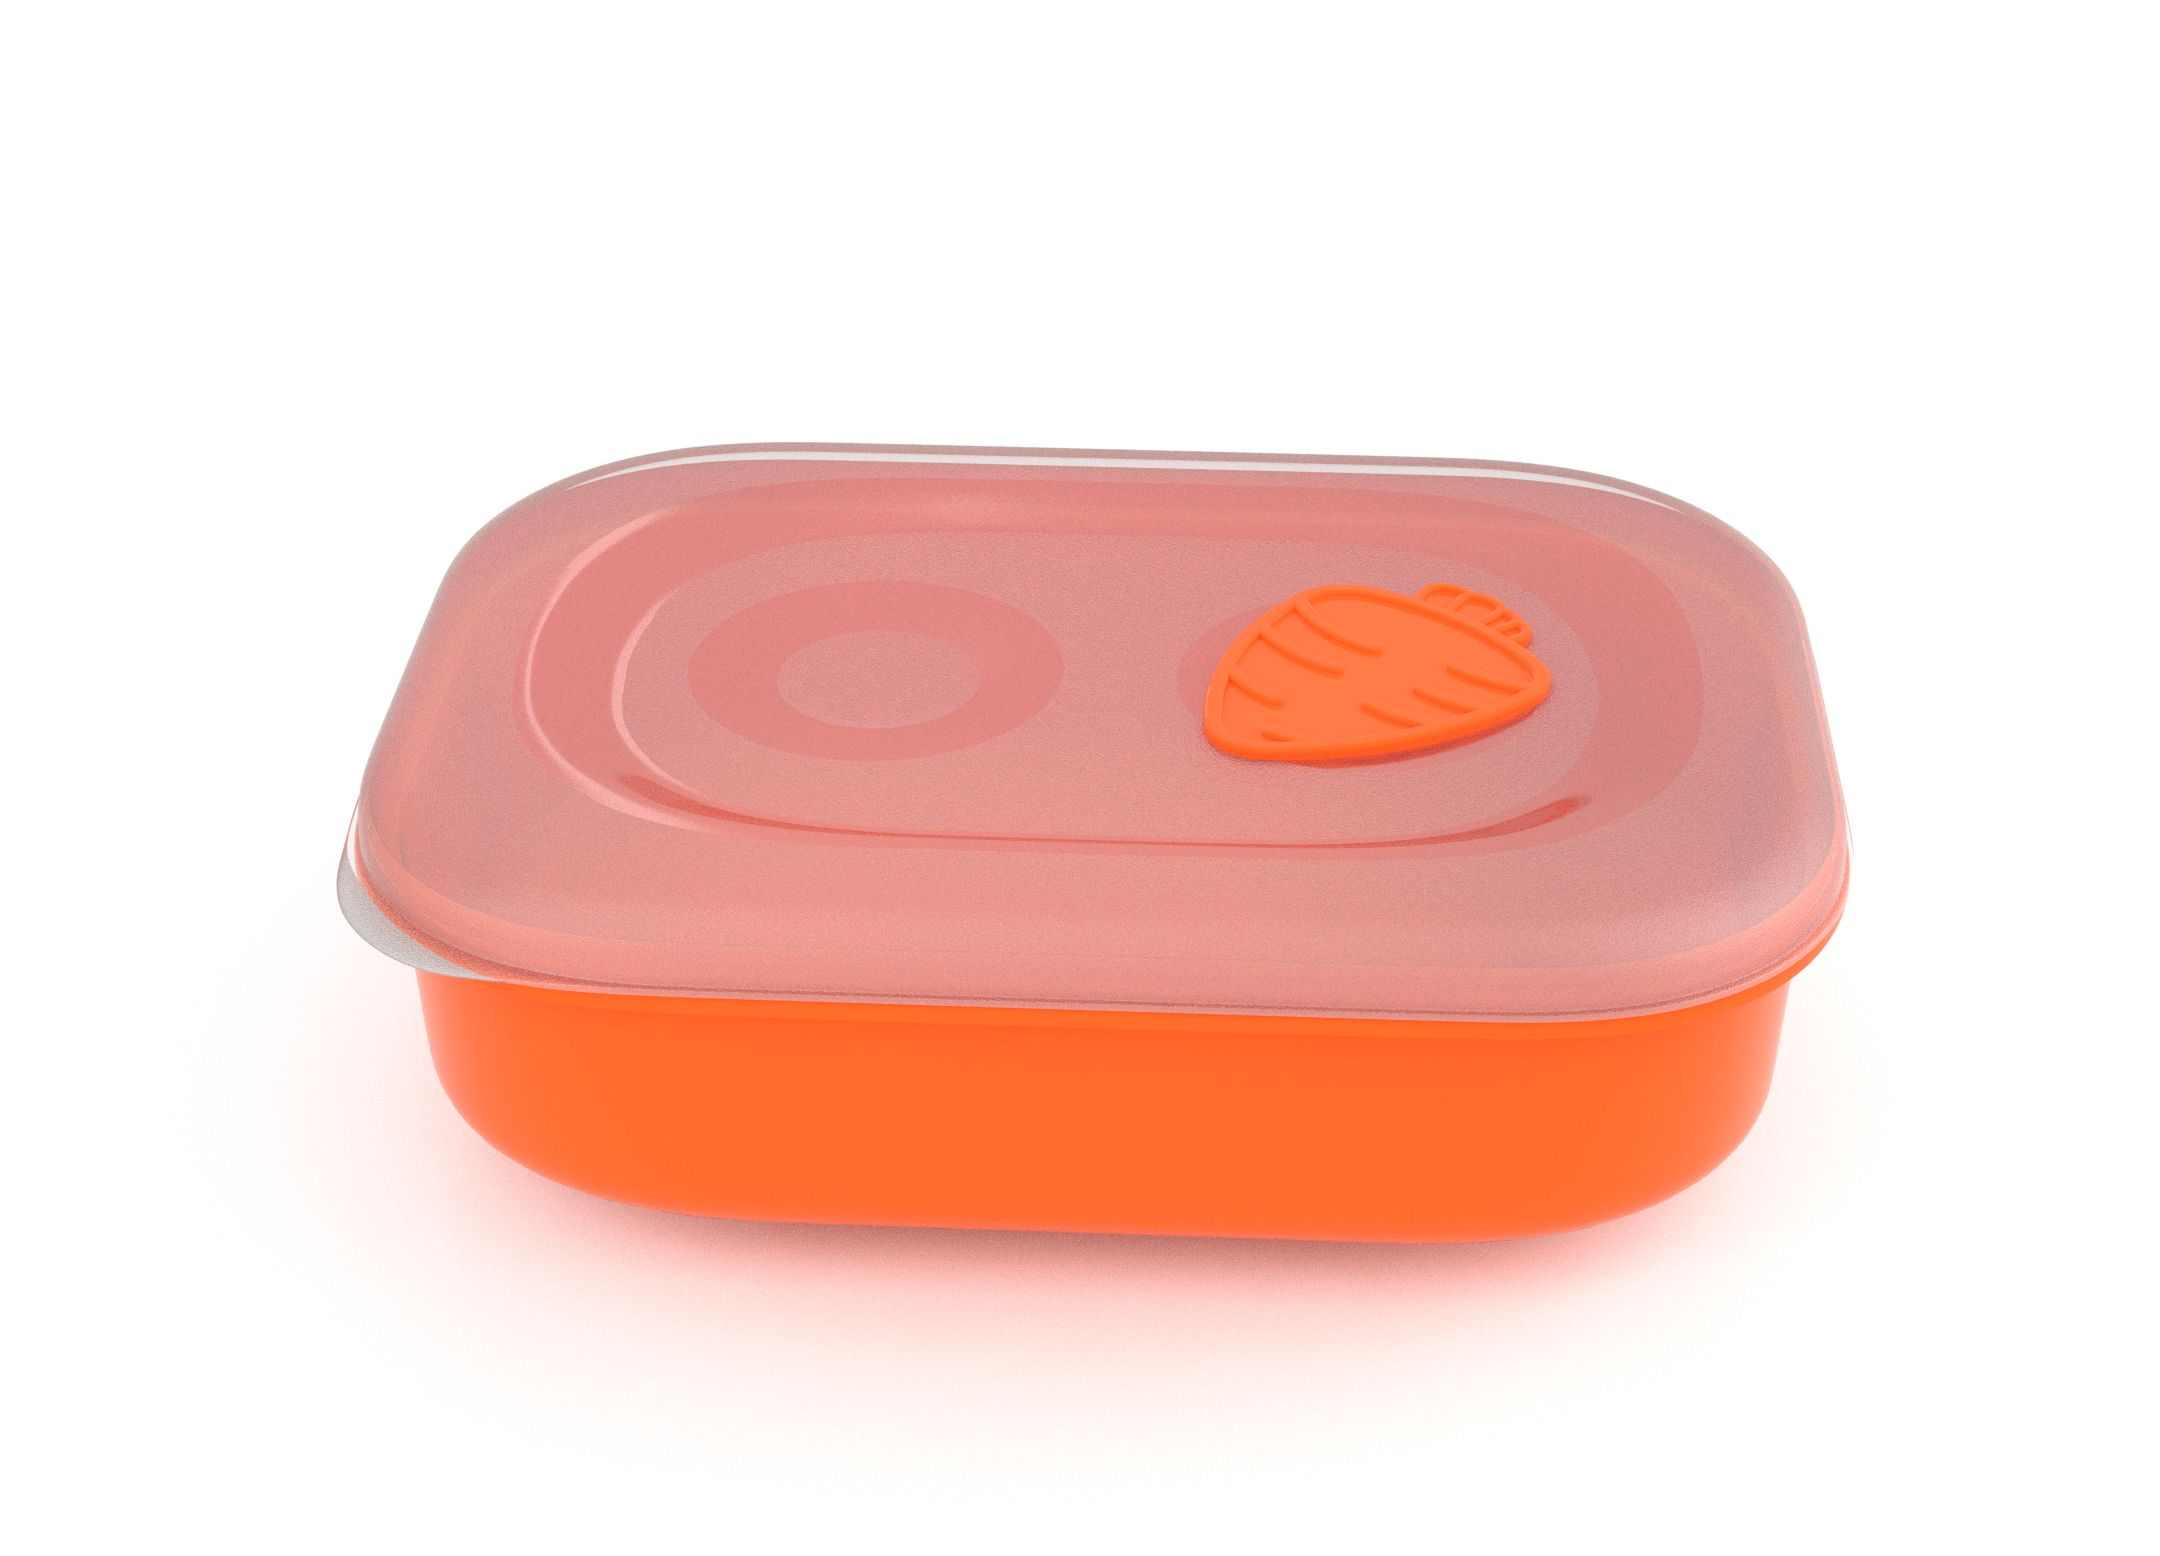 Tama Lock Rectangular Food Container 1.8l 9181 with Steam Release Carrot Valve Orange